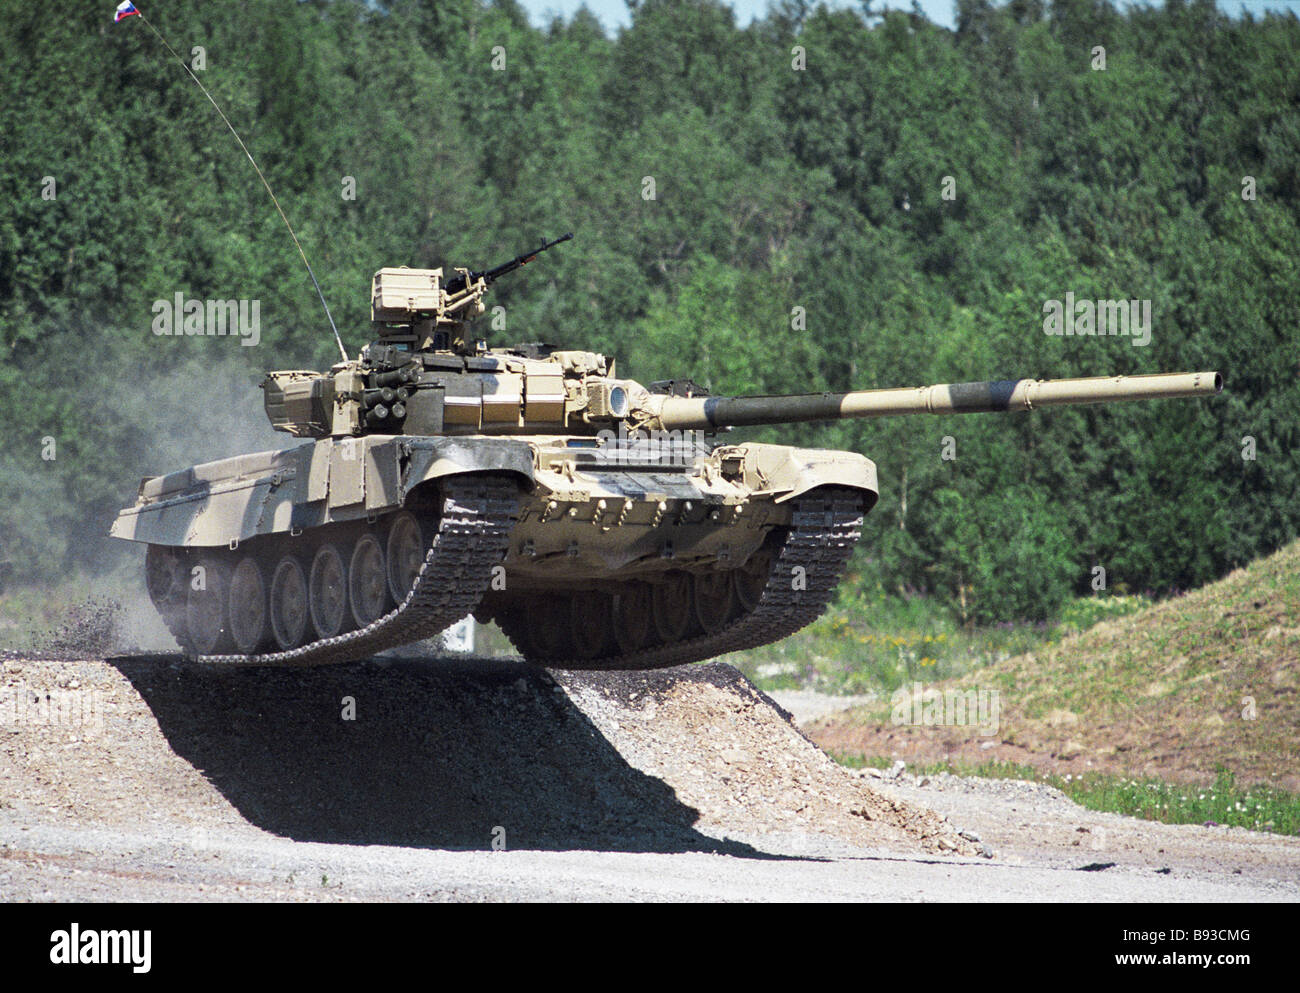 T 90 c armour at the second Ural weapons exhibition - Stock Image